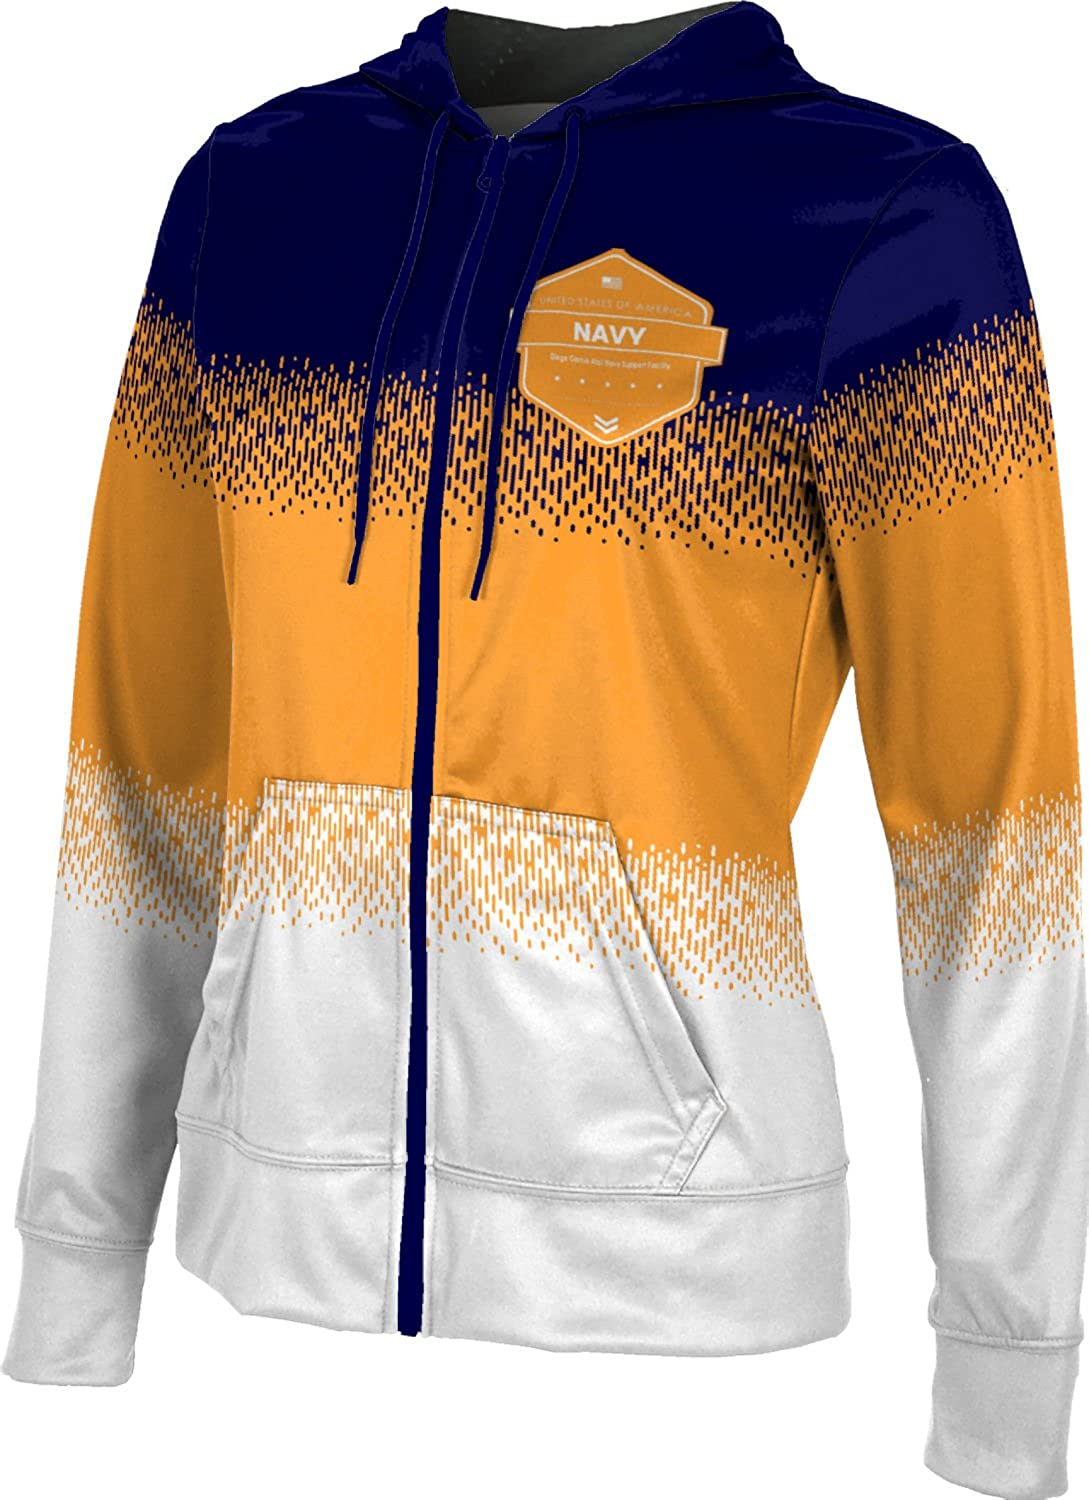 Women's Diego Garcia Atoll Navy Support Facility Military Drip Fullzip Hoodie